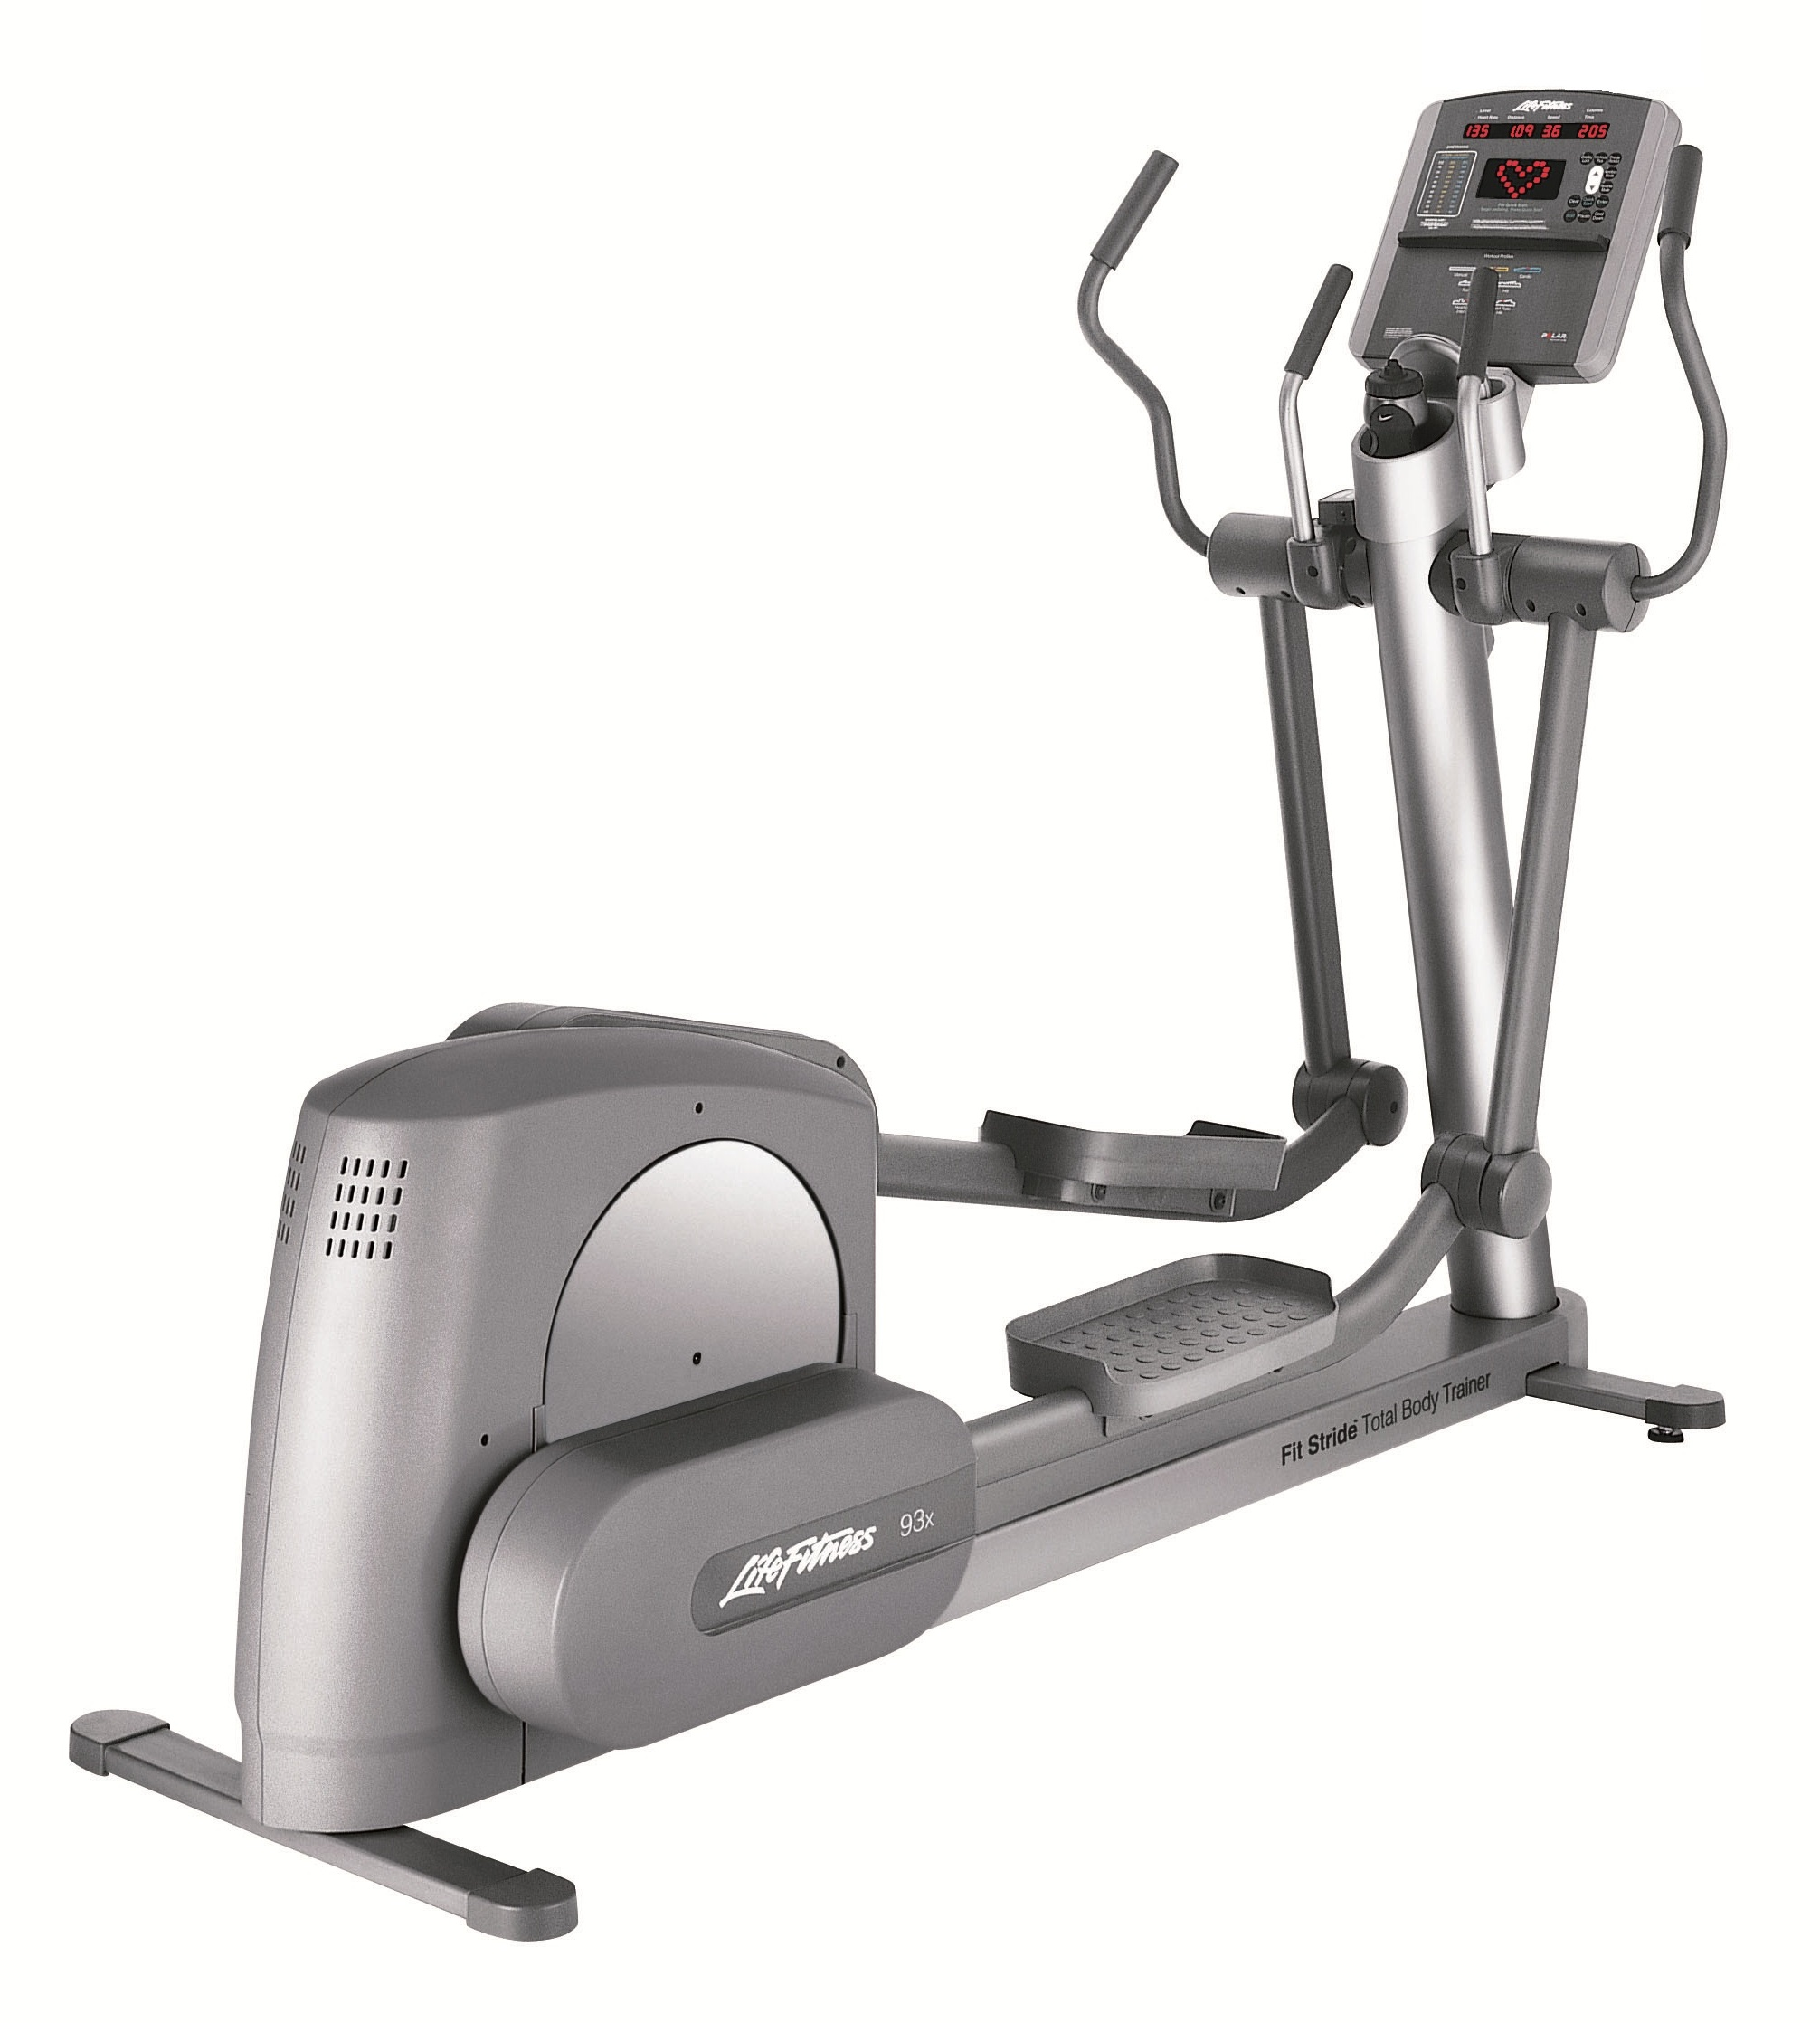 Refurbished 93x cross trainer life fitness for Gym life fitness